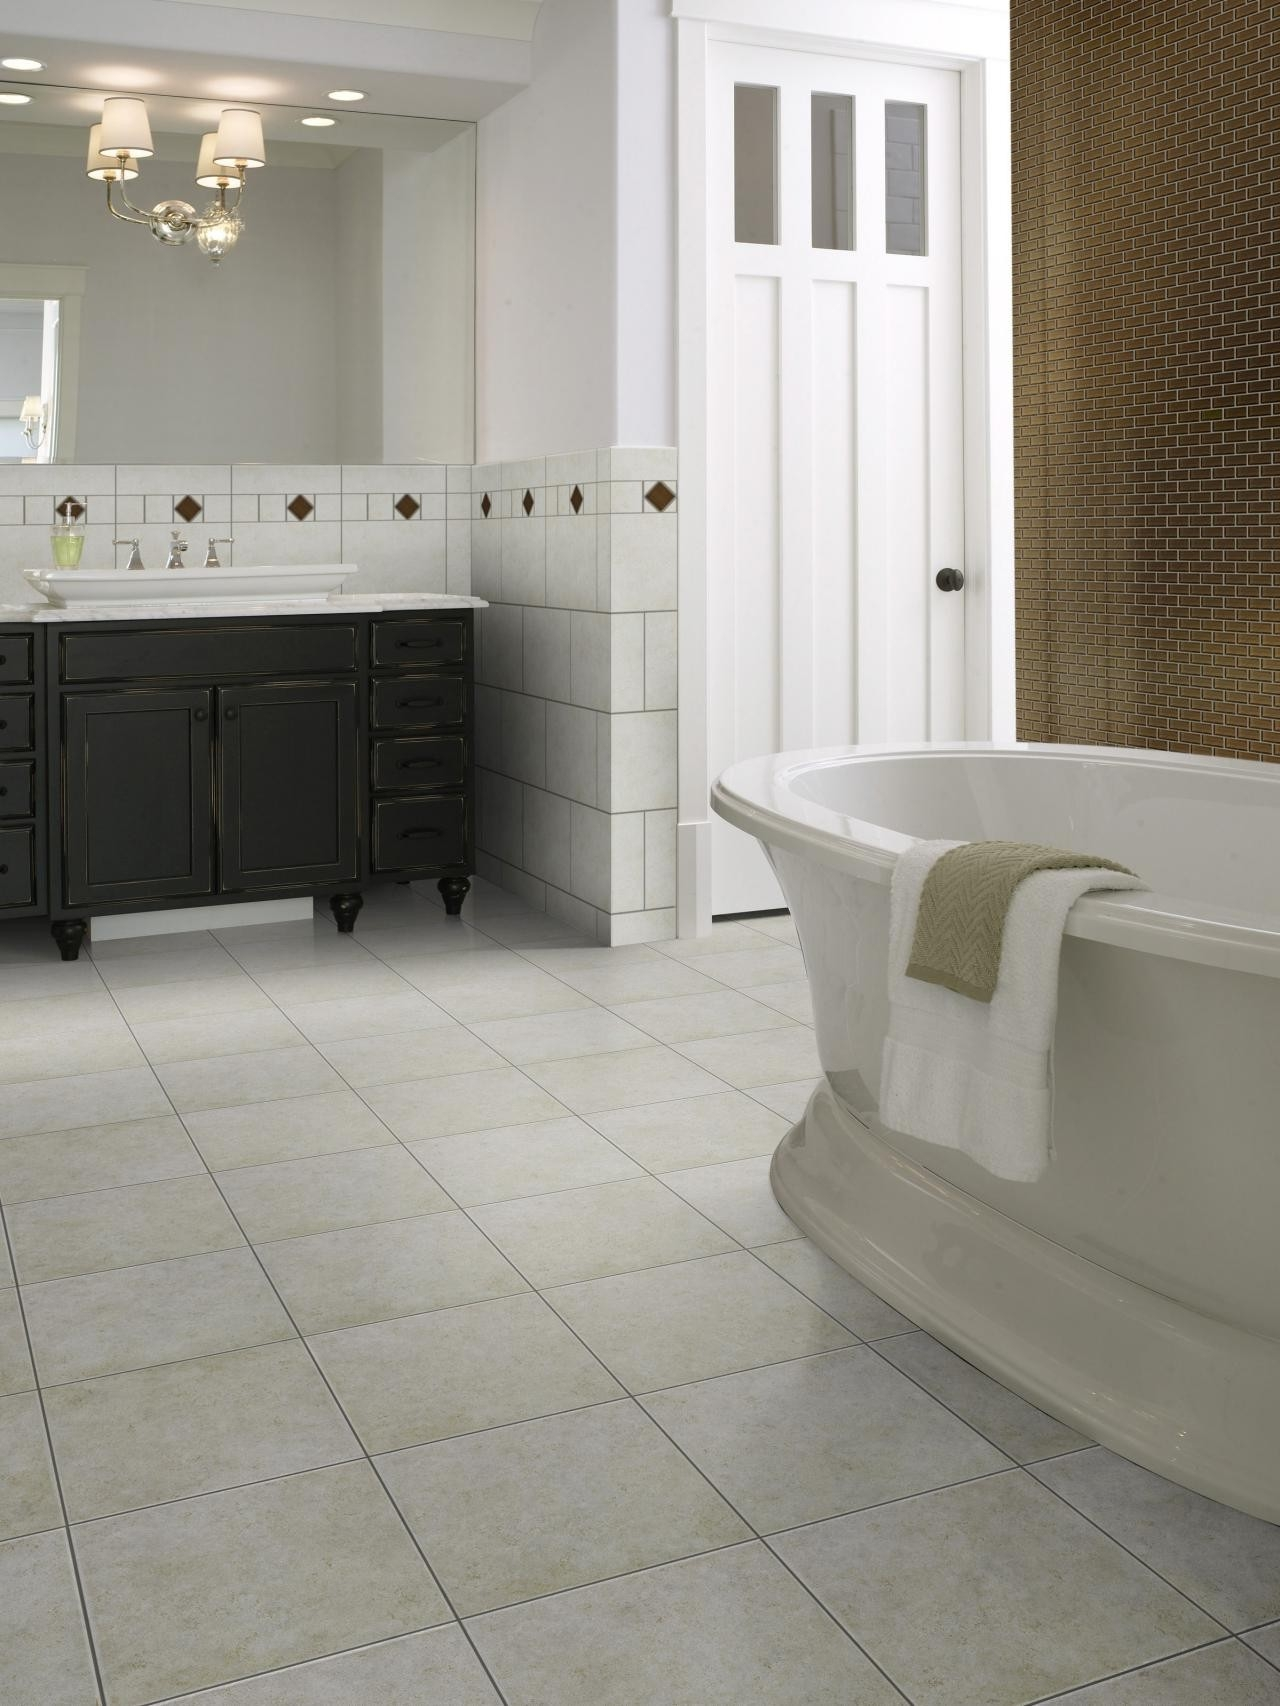 Bathroom Floor Cabinets B&Qcabinets bathroom floor cabinets b and q bathroom floor cabinets